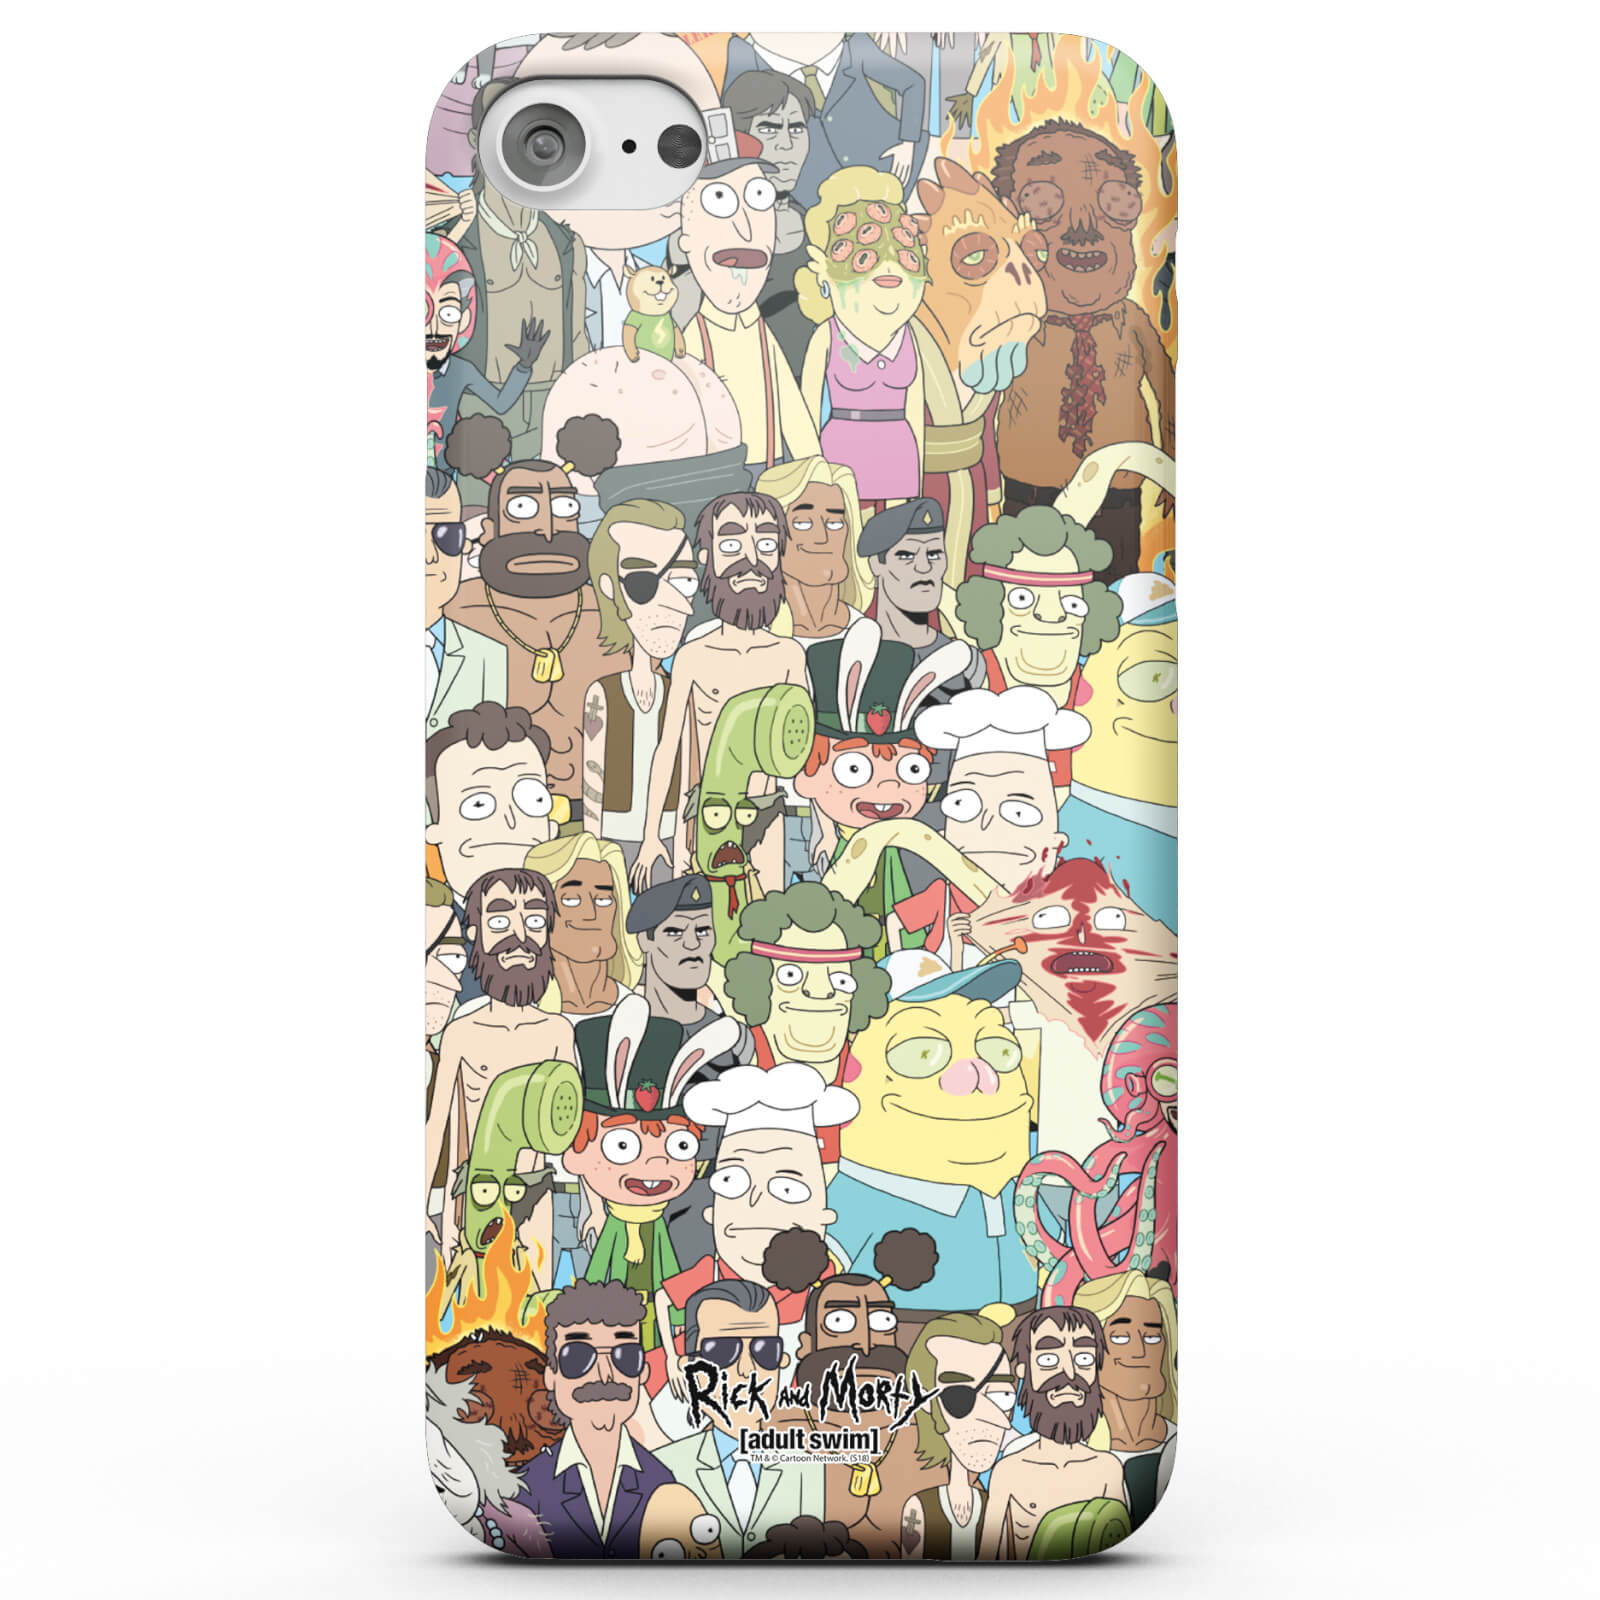 Funda Móvil Rick y Morty Interdimentional TV Characters para iPhone y Android - Samsung S8 - Carcasa doble capa - Mate de Rick and Morty